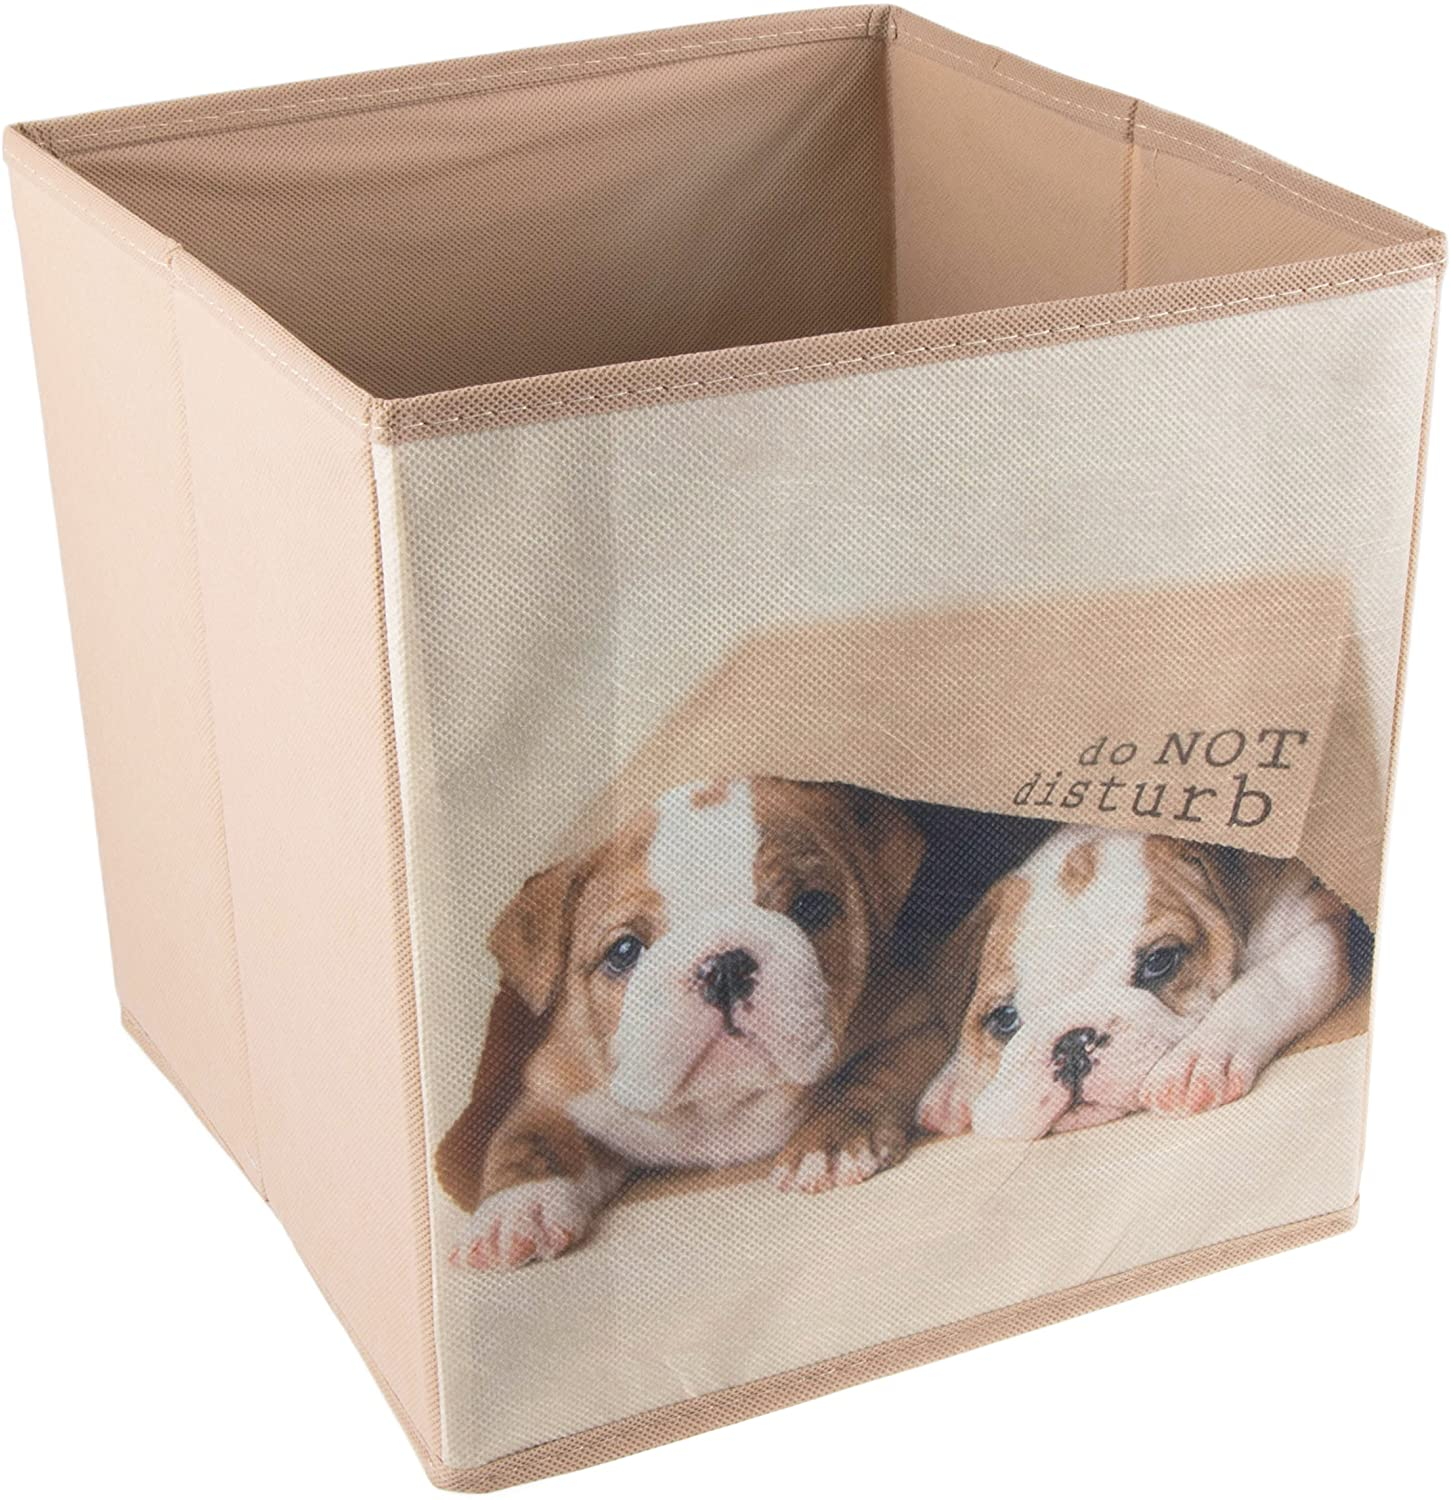 Clever Creations Cute Puppies in Bag Collapsible Storage Organizer Cube Folding Storage Organizer for Animal Themed Rooms | Perfect Size Storage Cube for Books, Shoes, Games